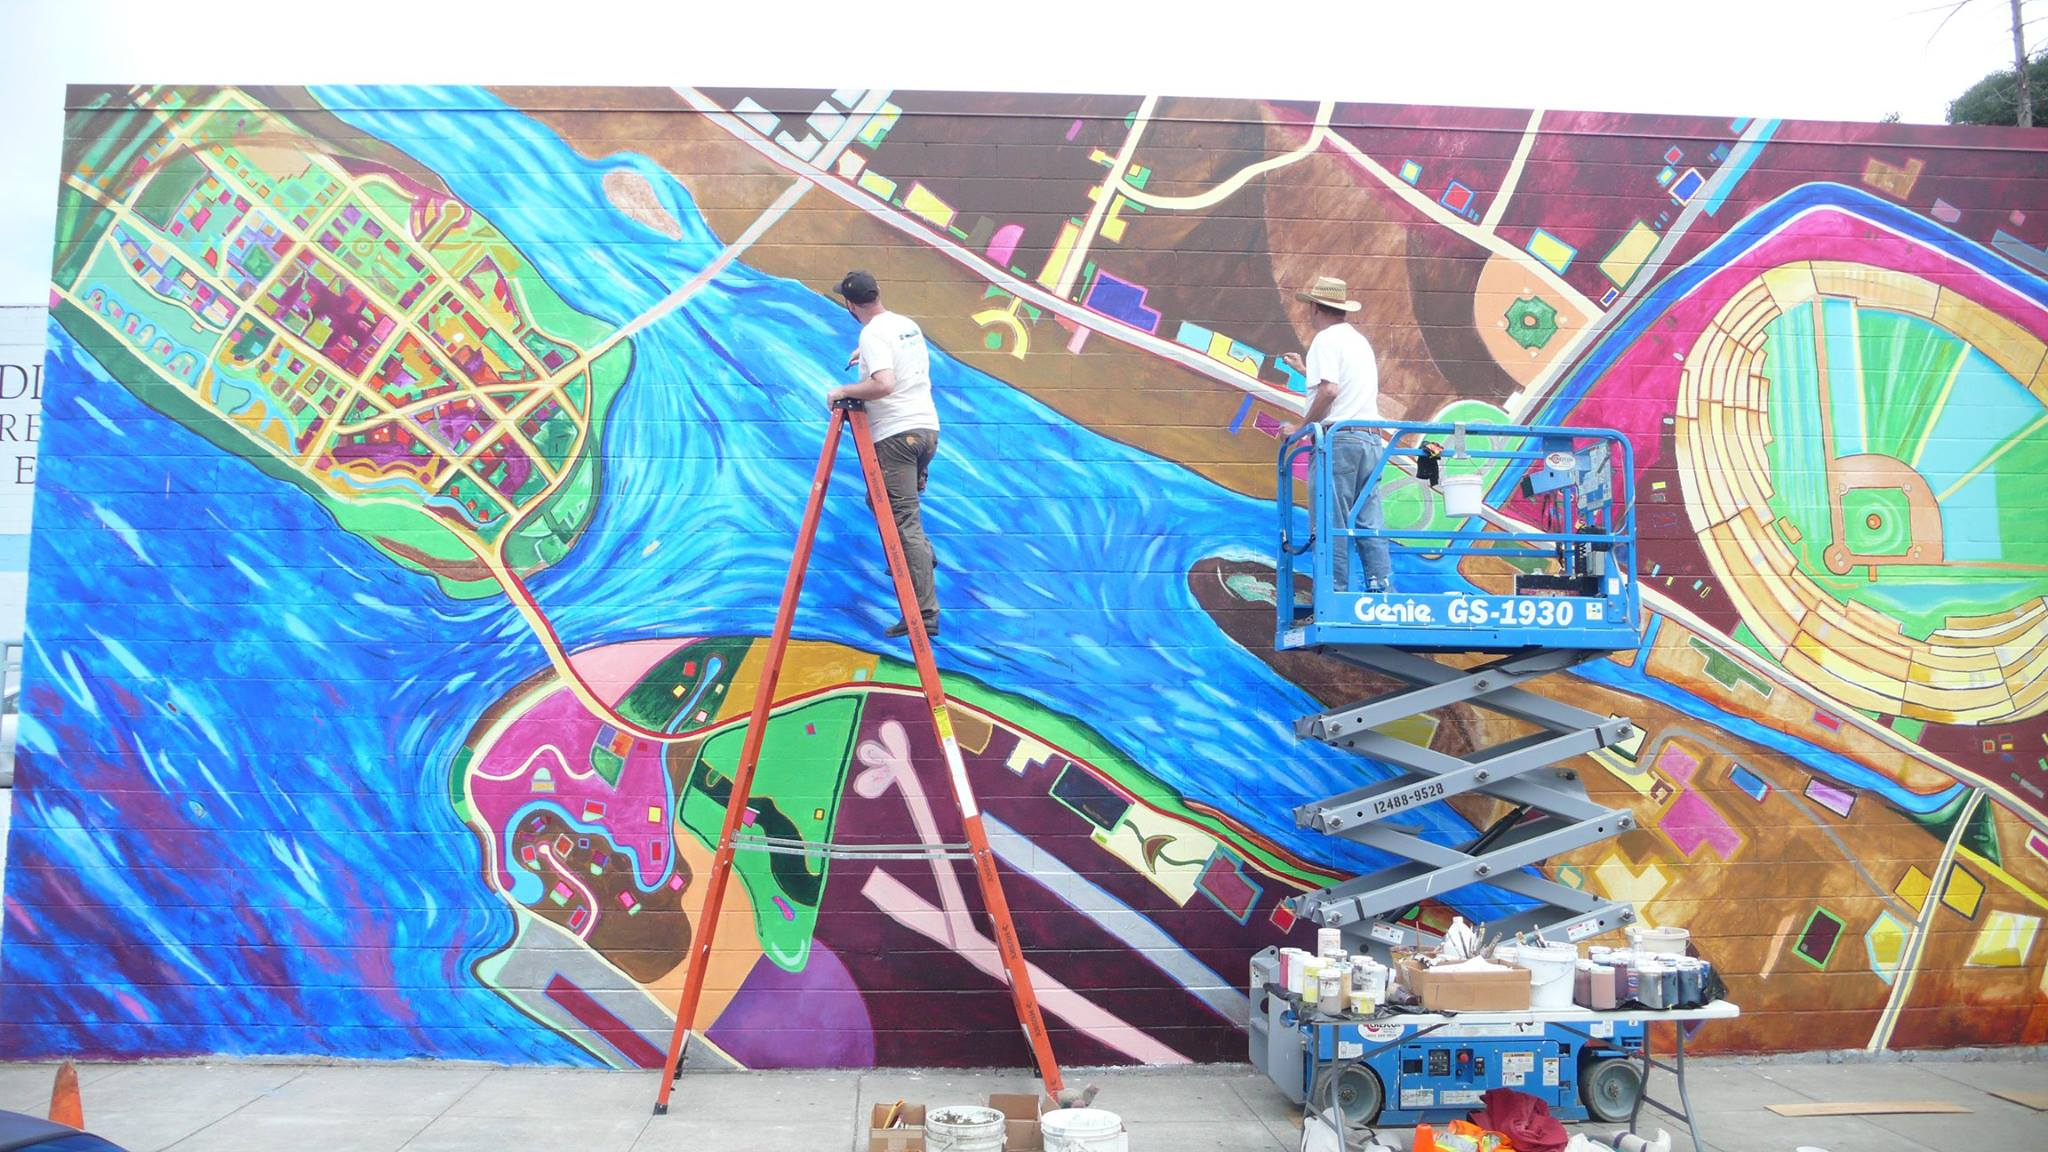 Project: Fabric of the City-2015    Media: Acrylics    Dimensions: 18' x 50'    Location: Madison and Sixth Street, Oakland